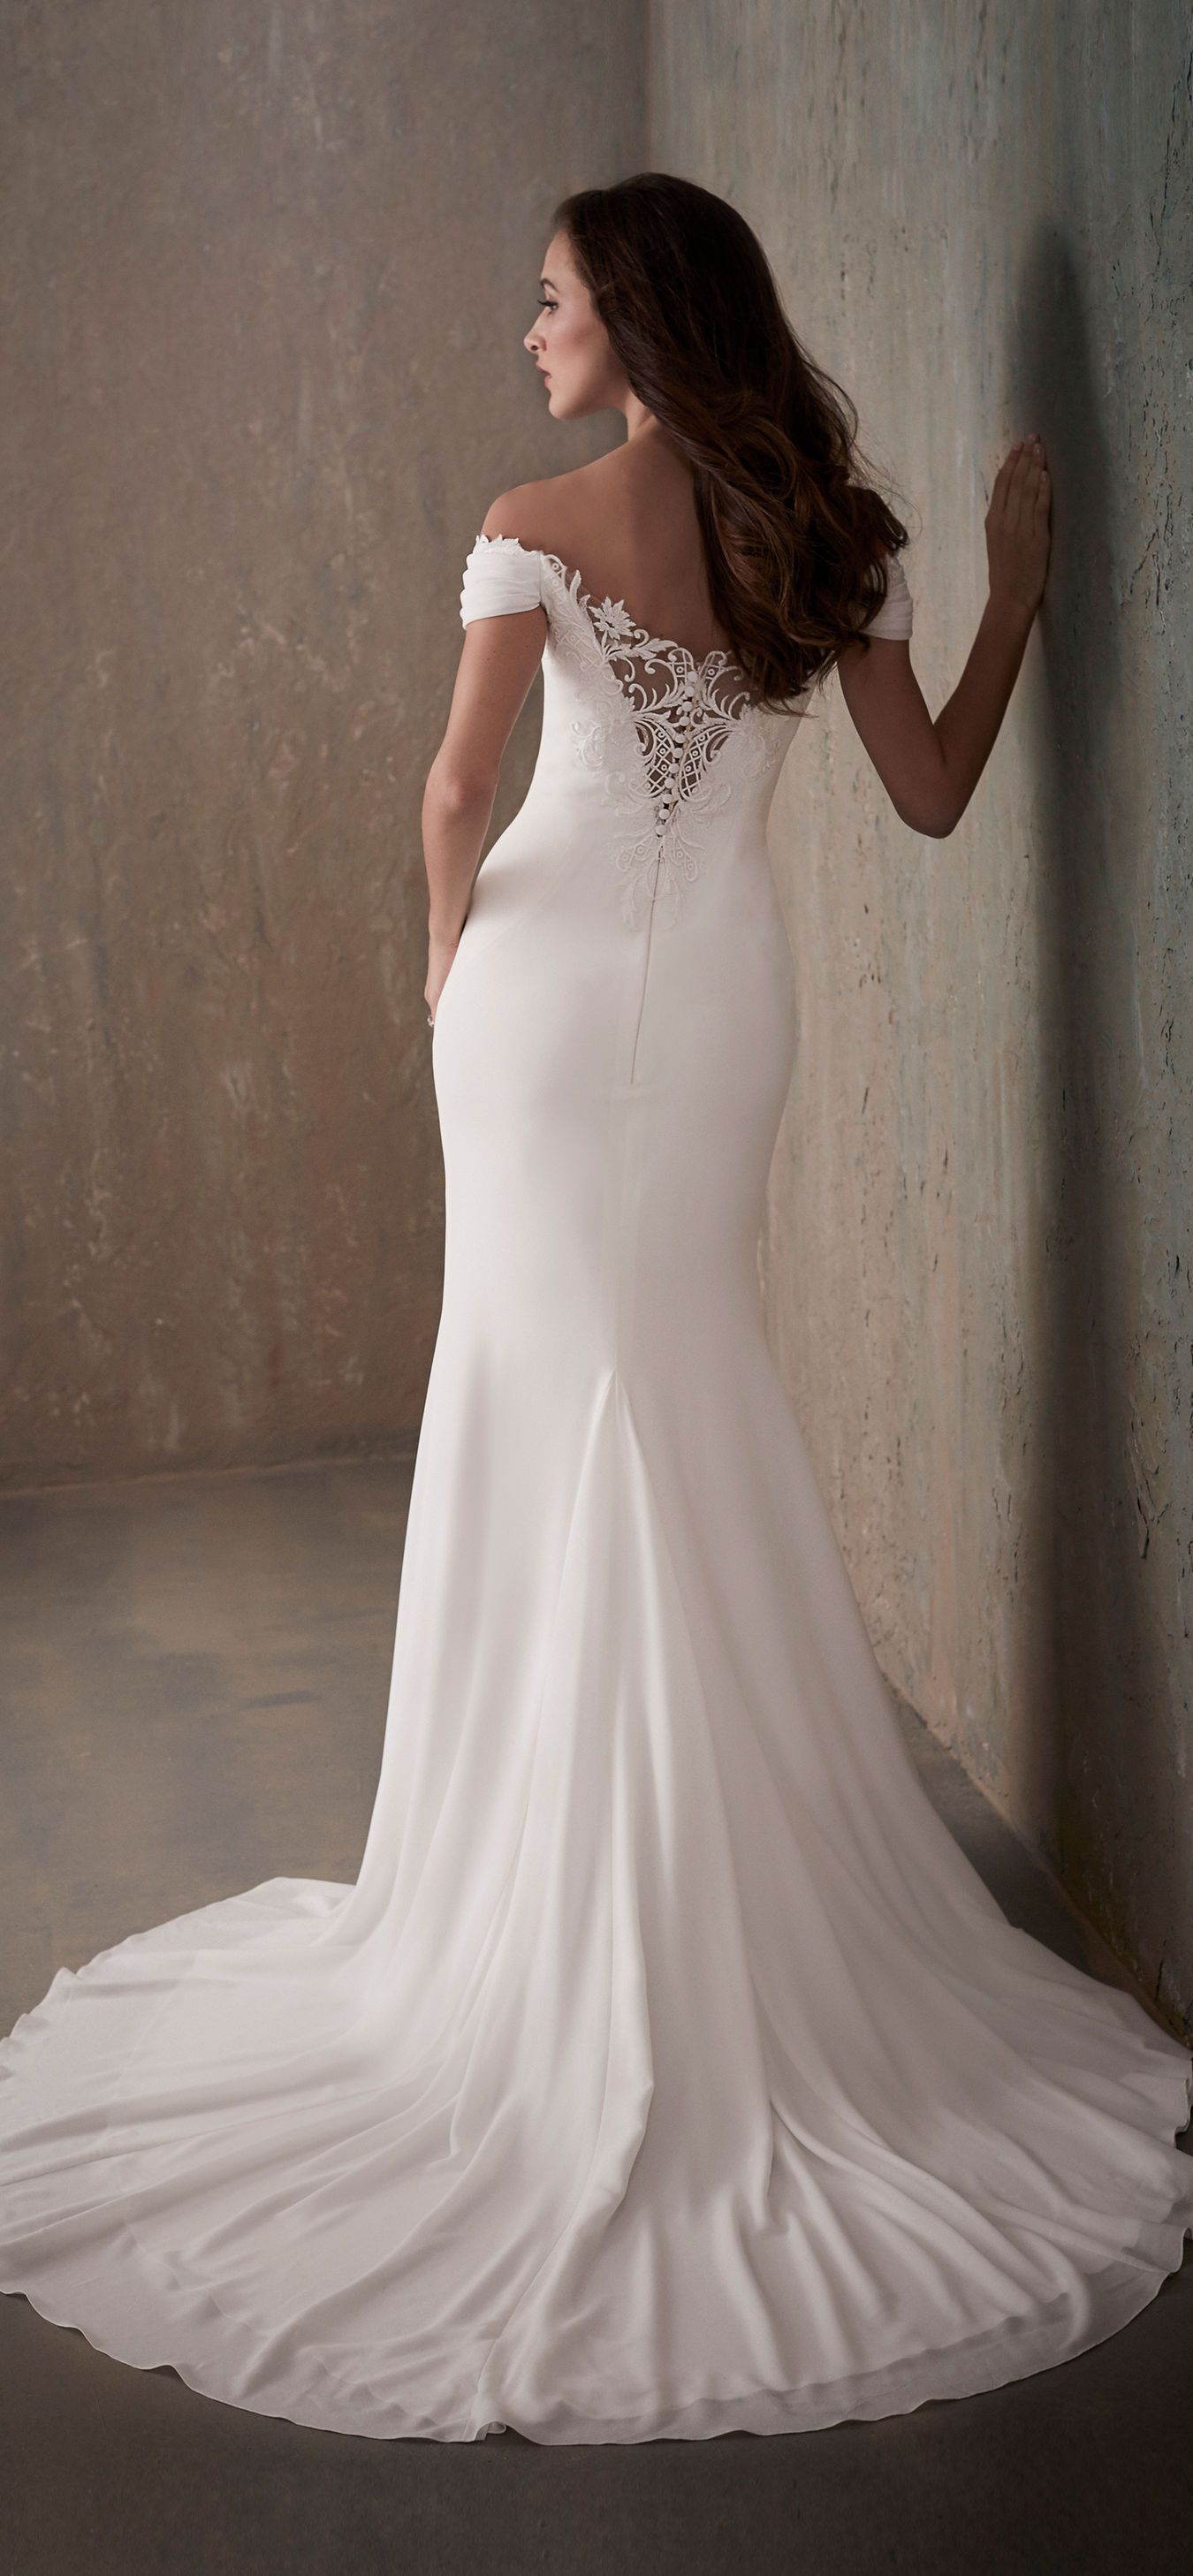 Adrianna Papell Simple Crepe Wedding Dress with Lace